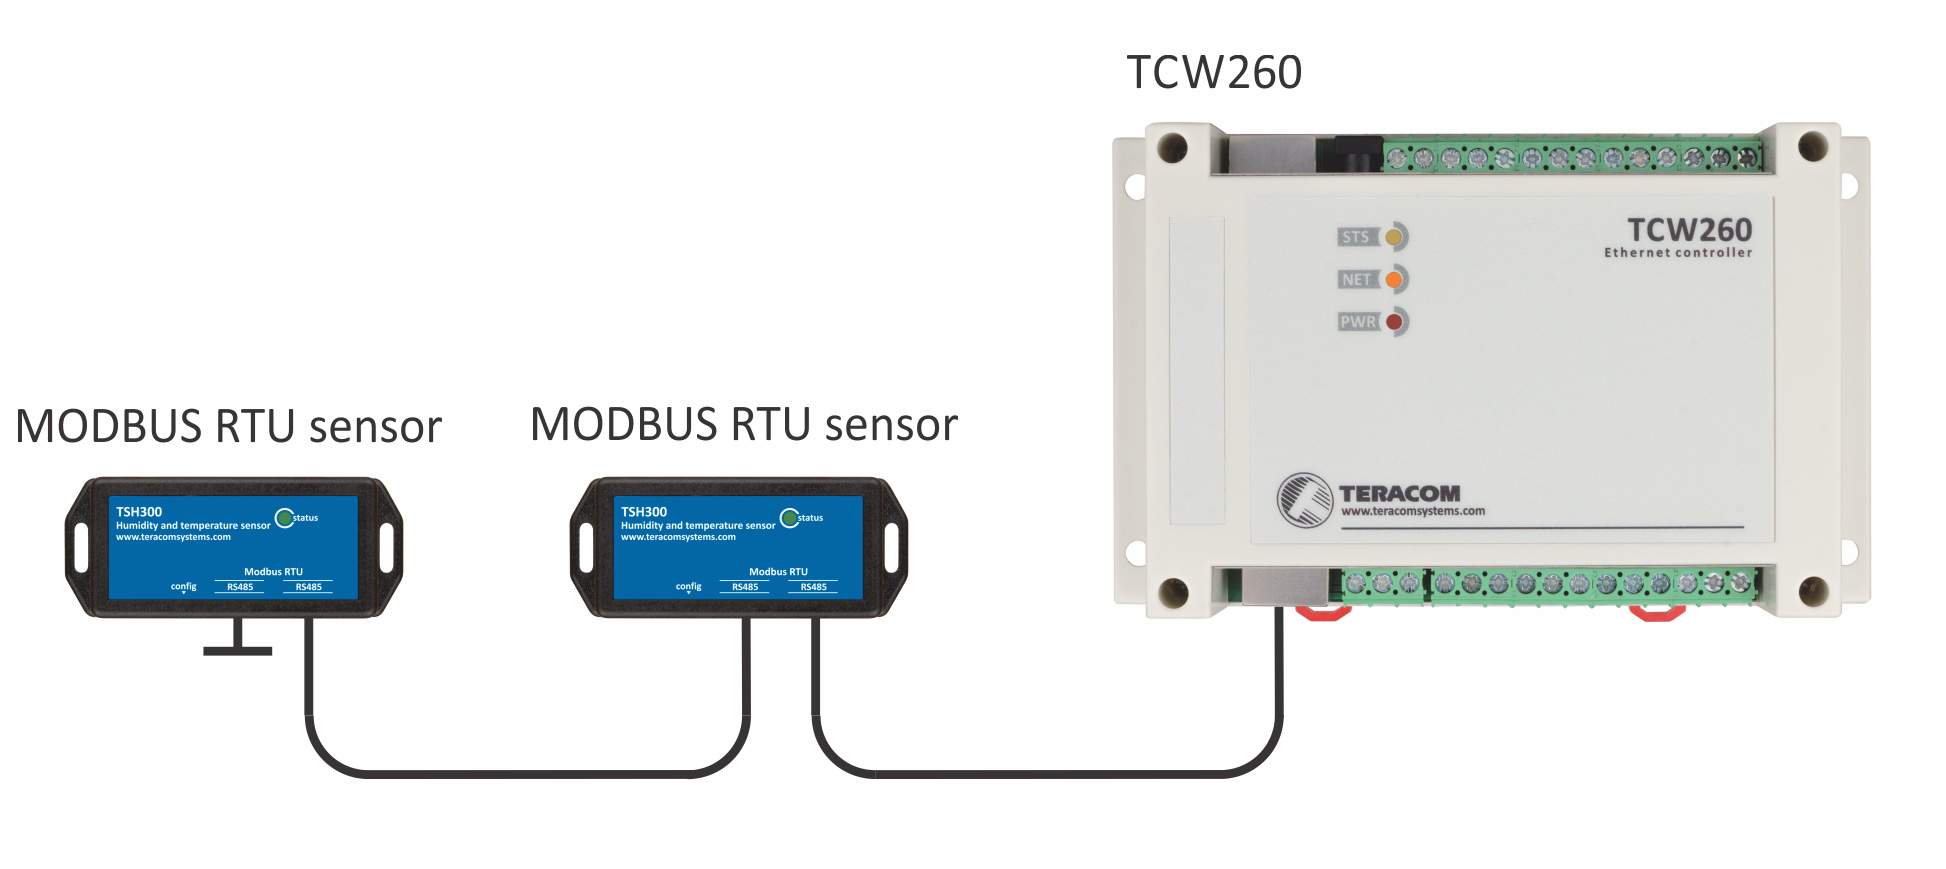 Energy monitoring module with MODBUS RTU support - TCW260